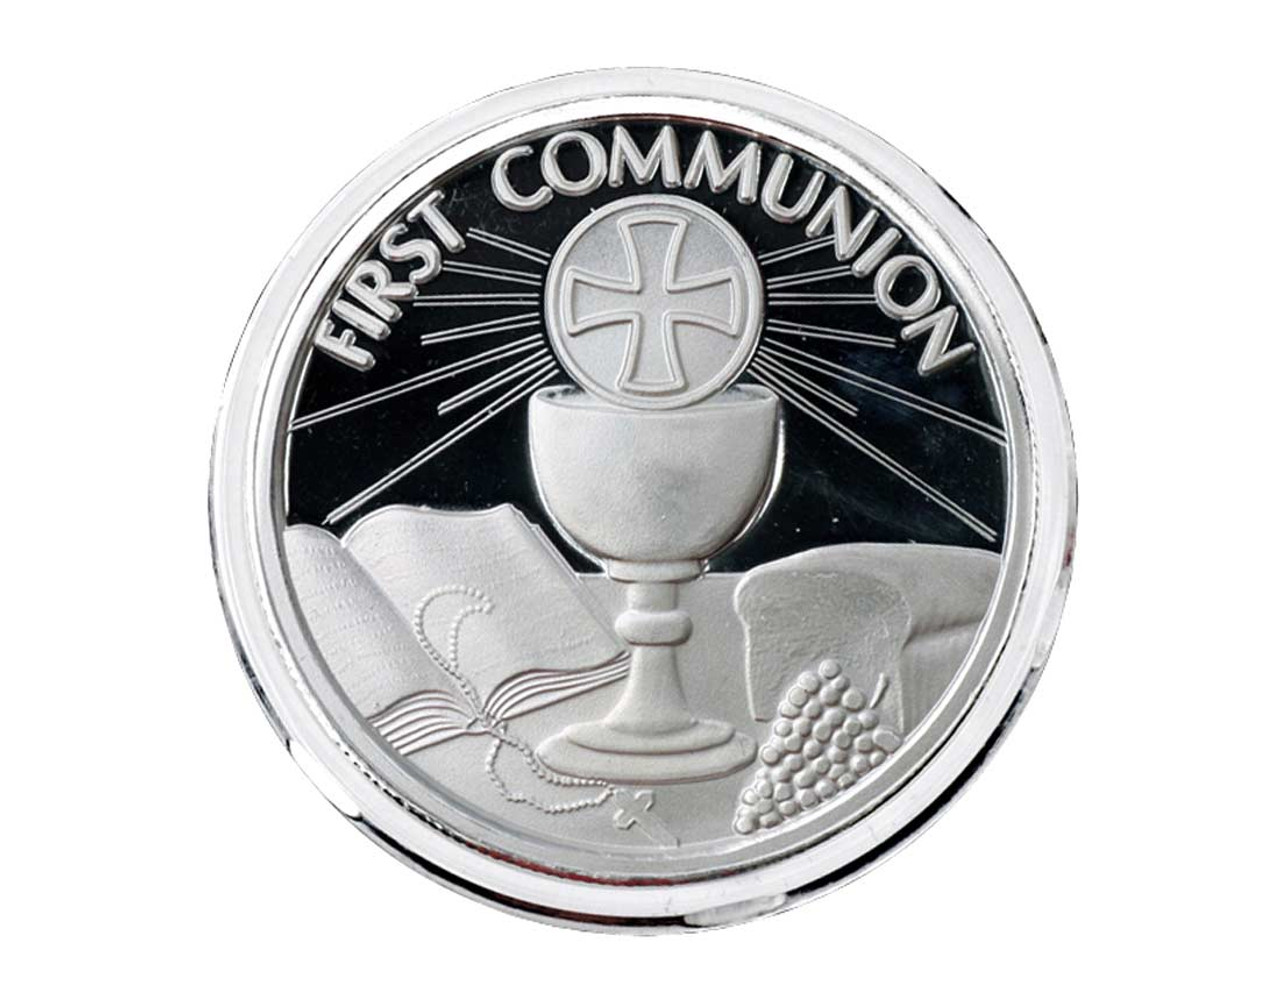 Communion Commemorative